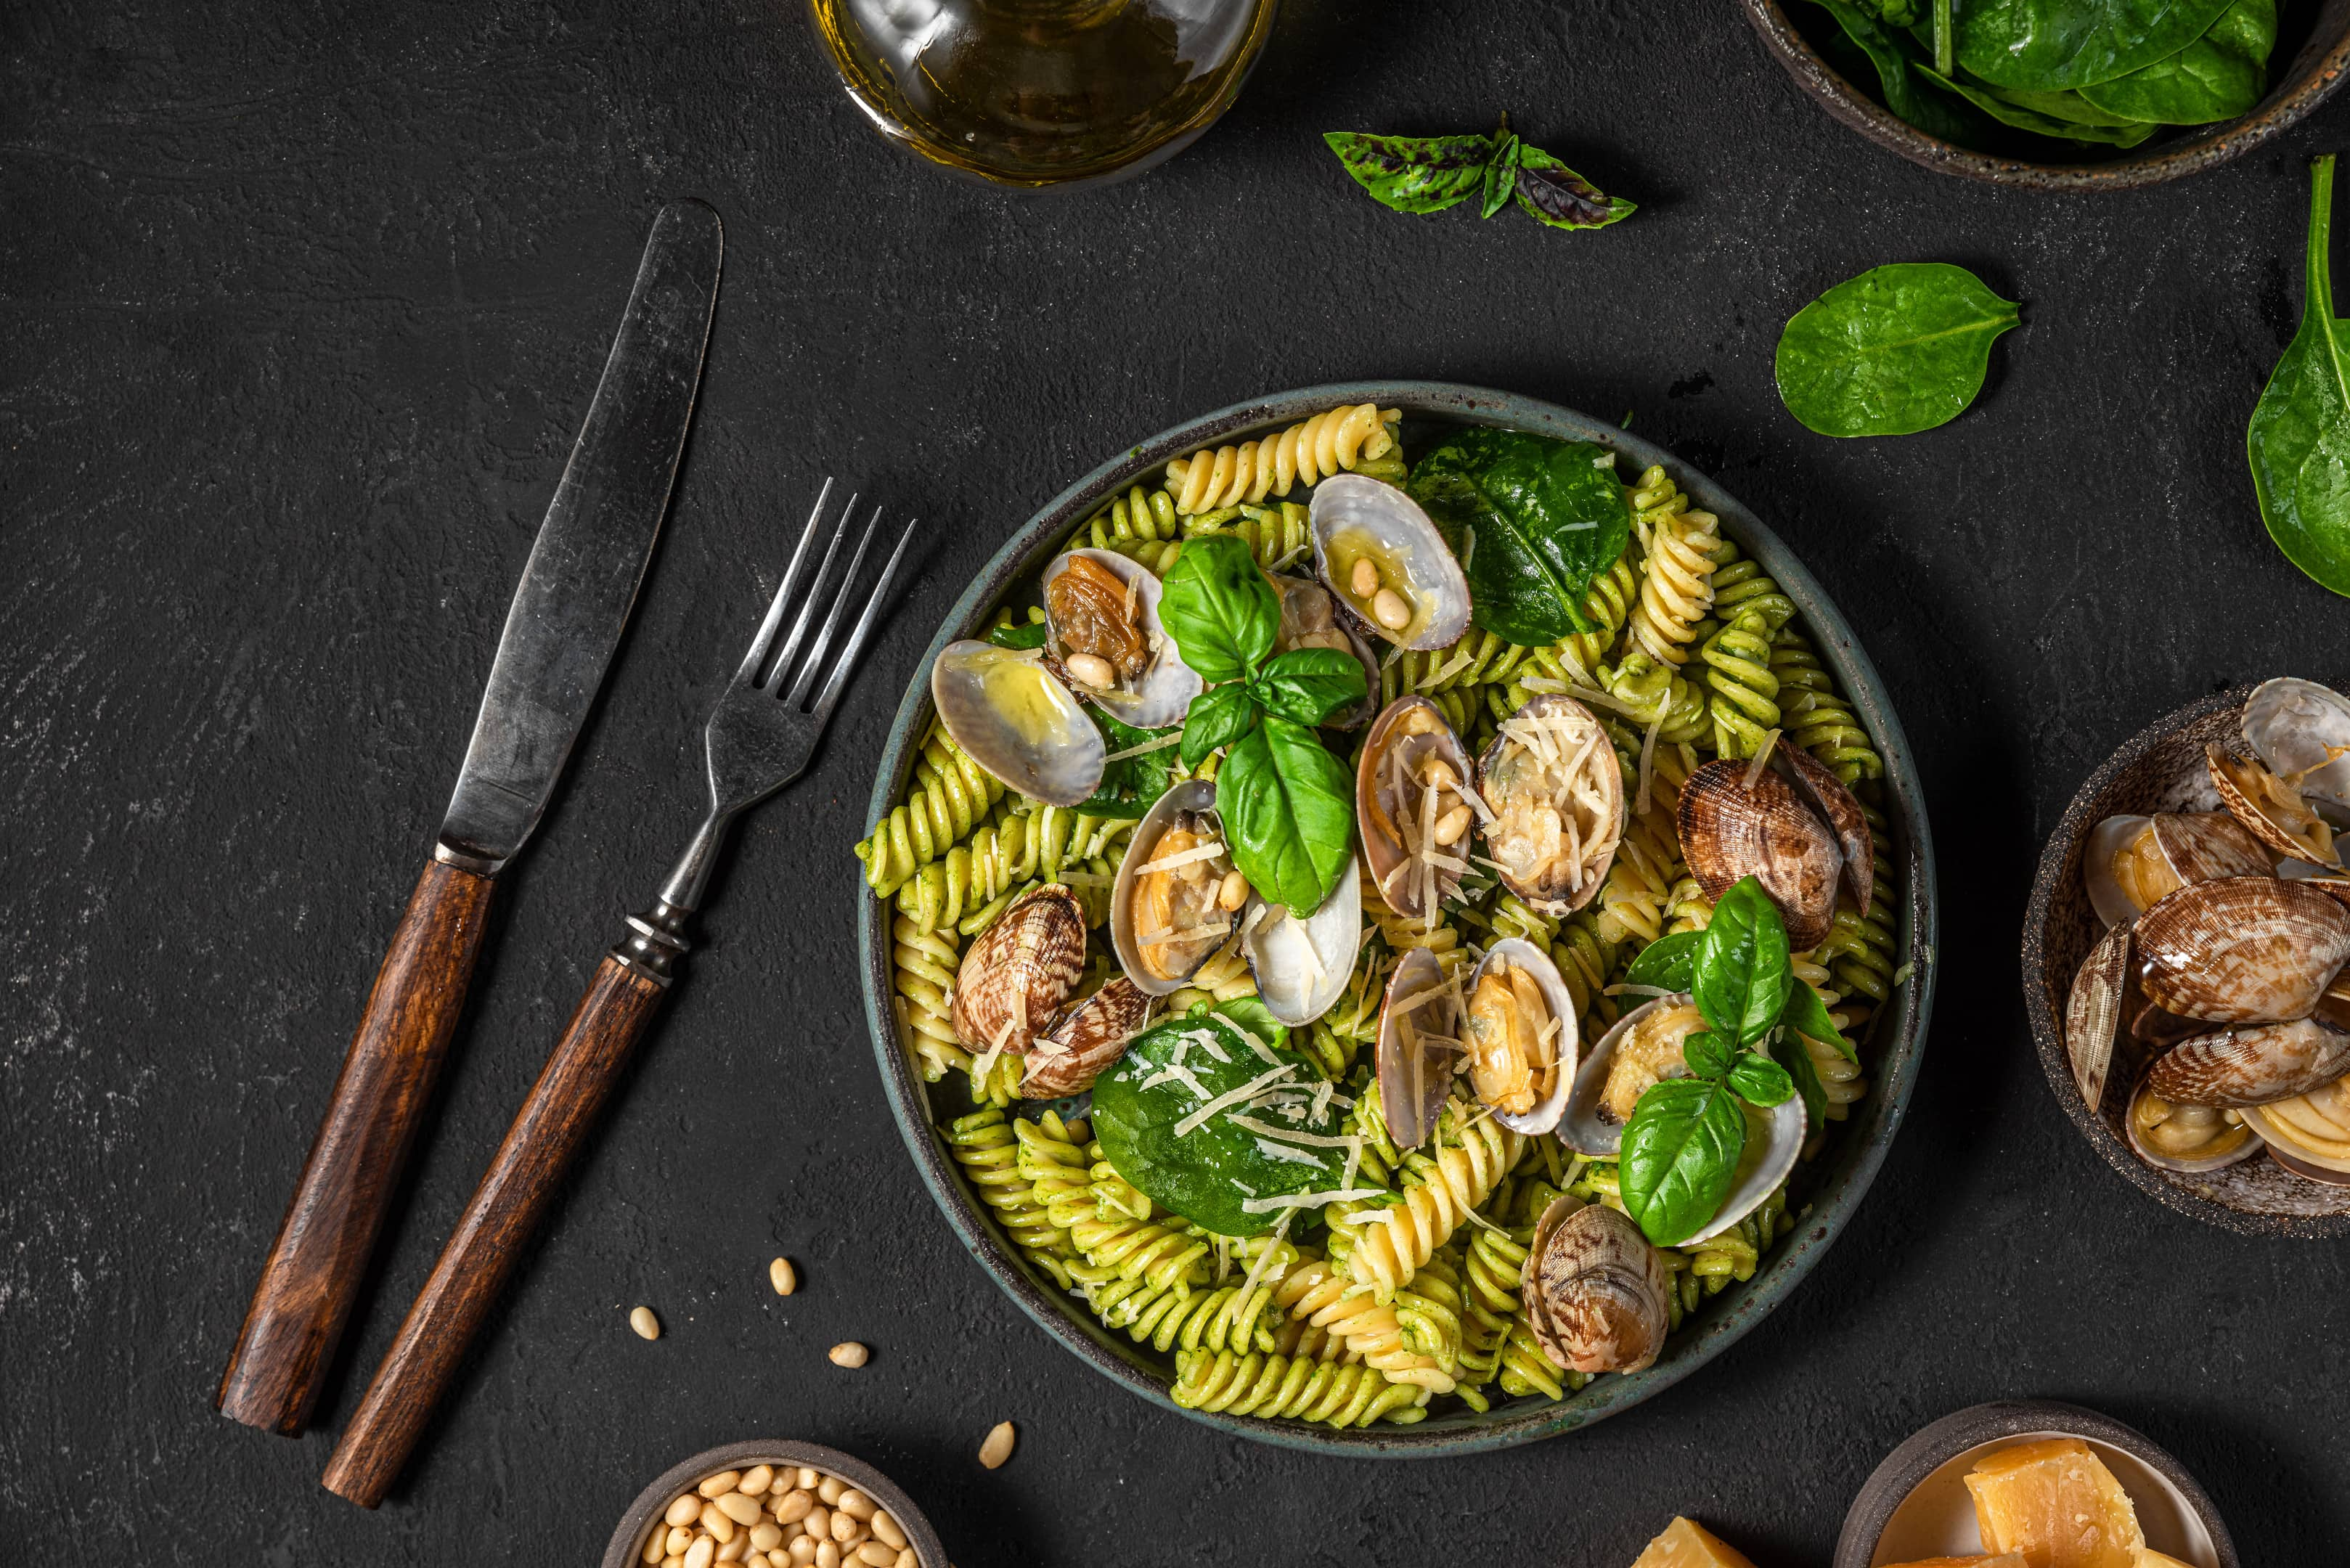 Seafood pasta with vongole clams, spinach parmesan cheese, pine nuts and basil